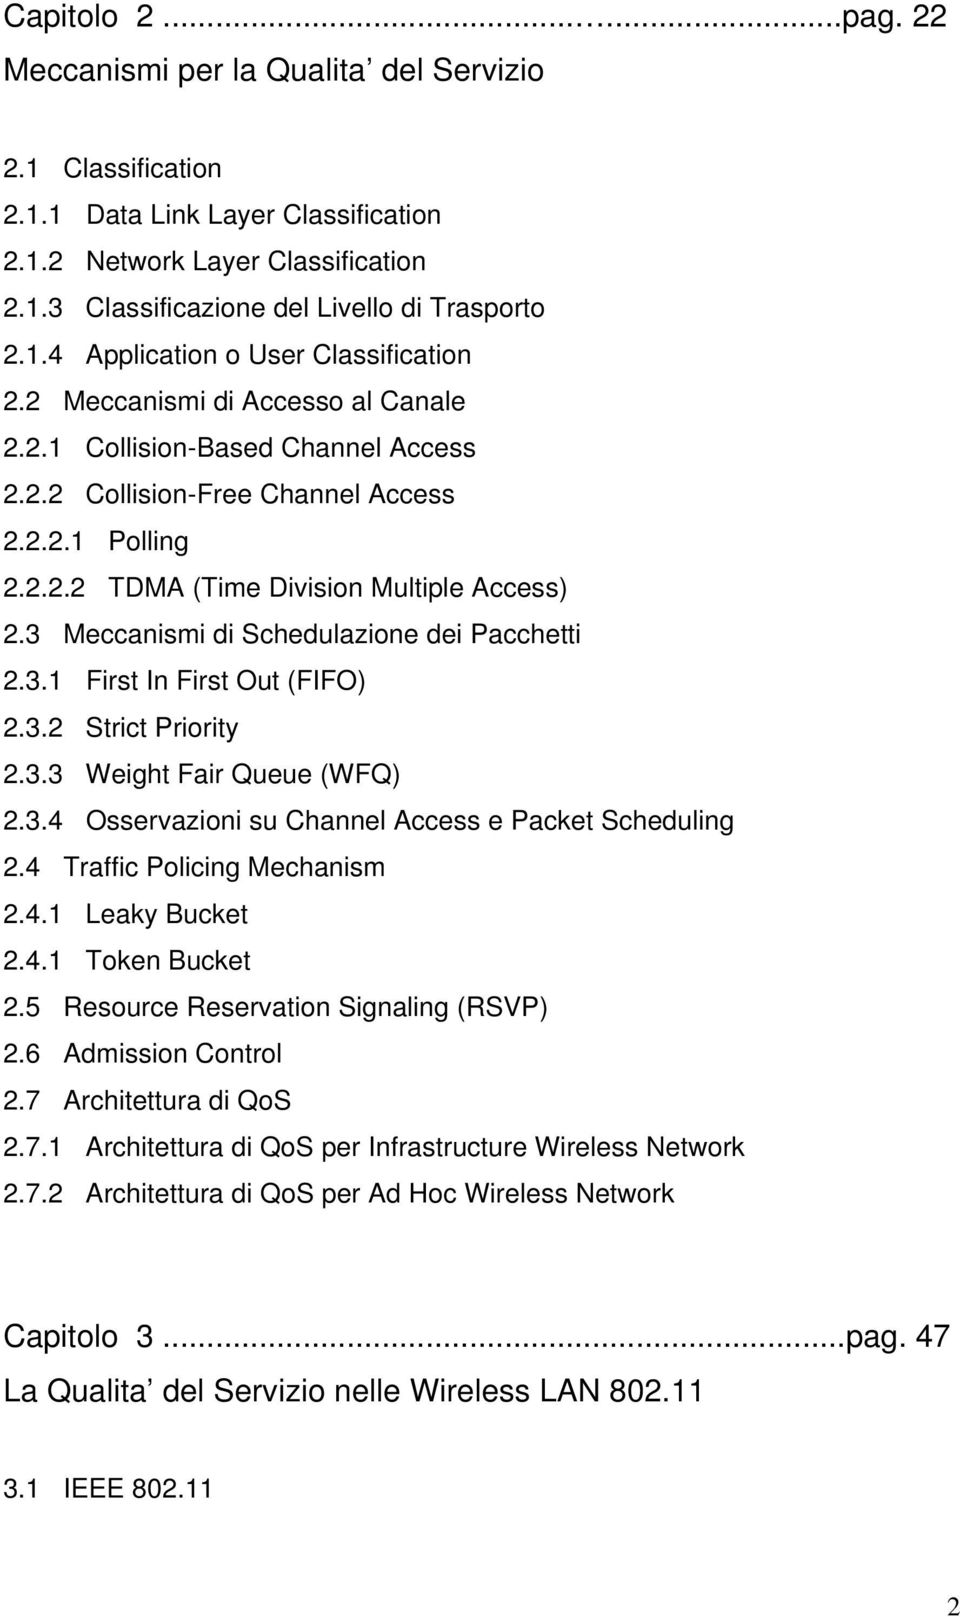 3 Meccanismi di Schedulazione dei Pacchetti 2.3.1 First In First Out (FIFO) 2.3.2 Strict Priority 2.3.3 Weight Fair Queue (WFQ) 2.3.4 Osservazioni su Channel Access e Packet Scheduling 2.